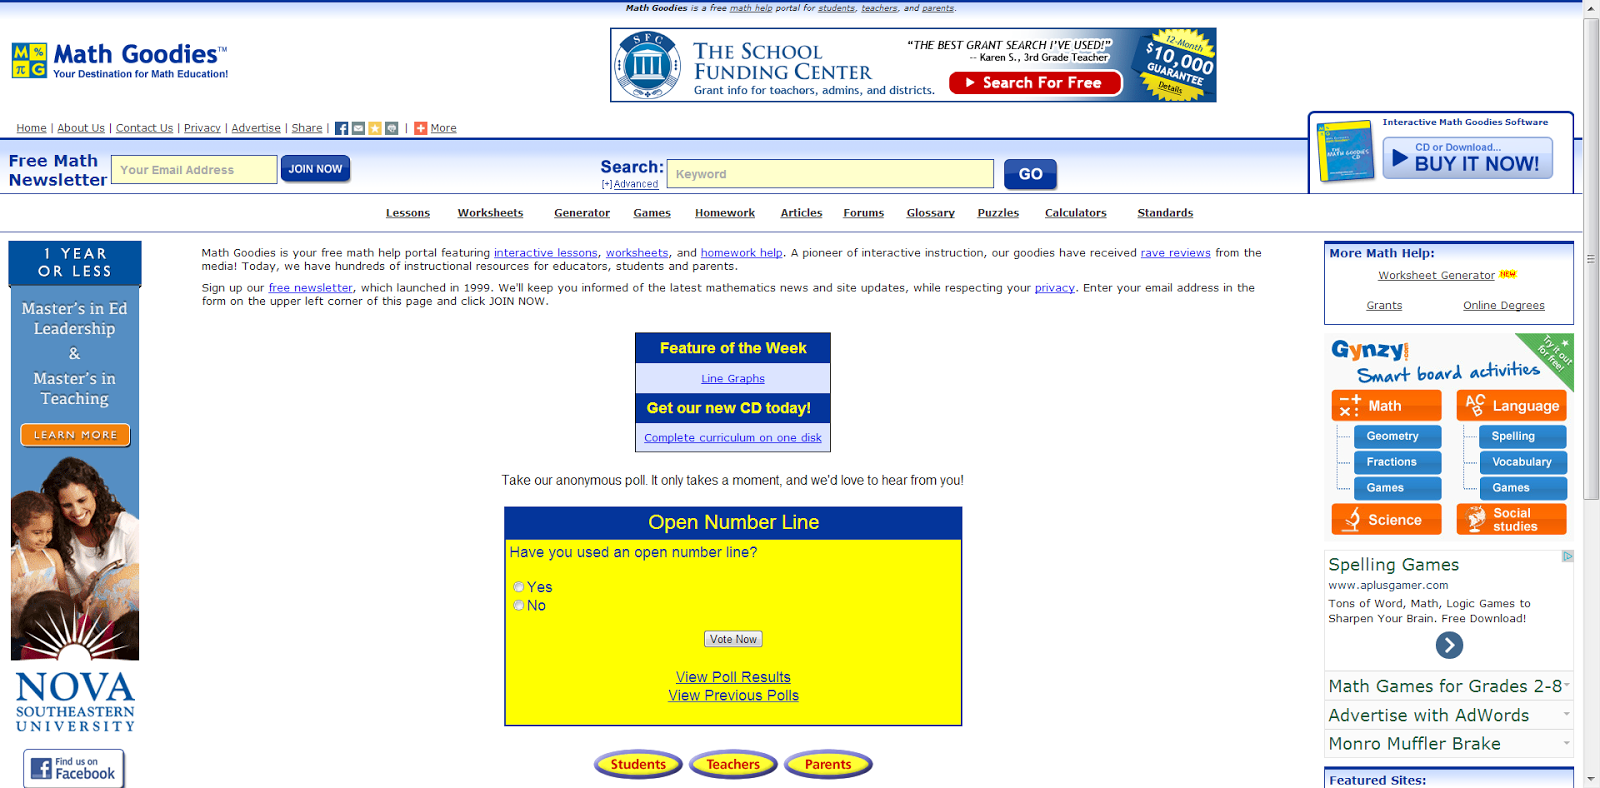 Learning Never Stops: 29 great math websites for students of